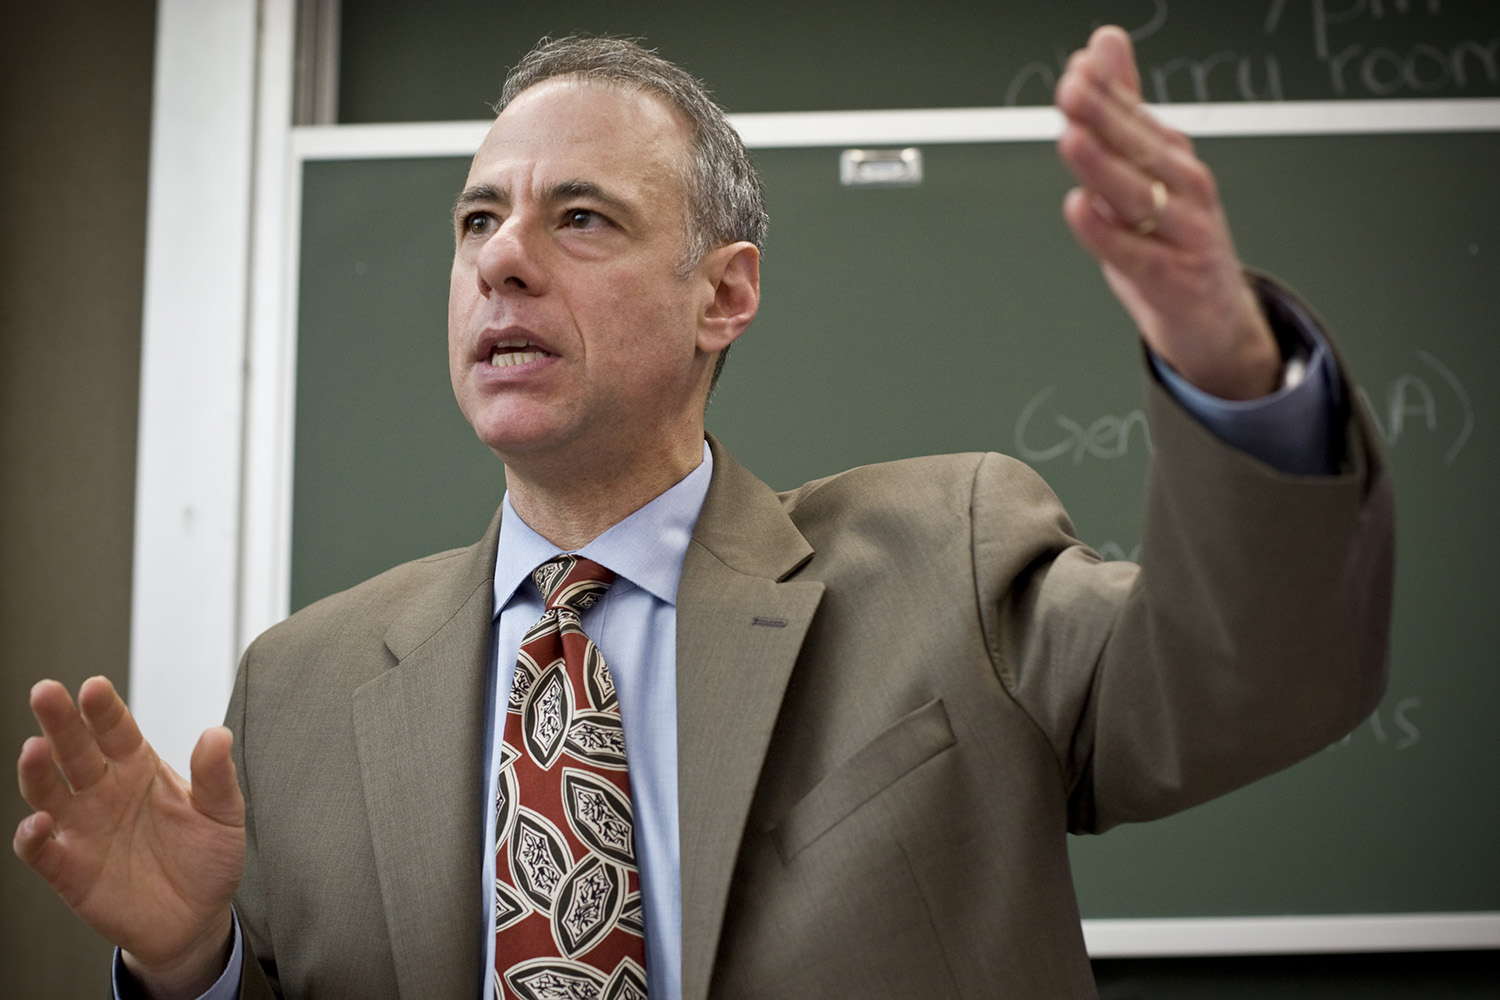 Professor David M. Siegel of the Center for Law and Social Responsibility